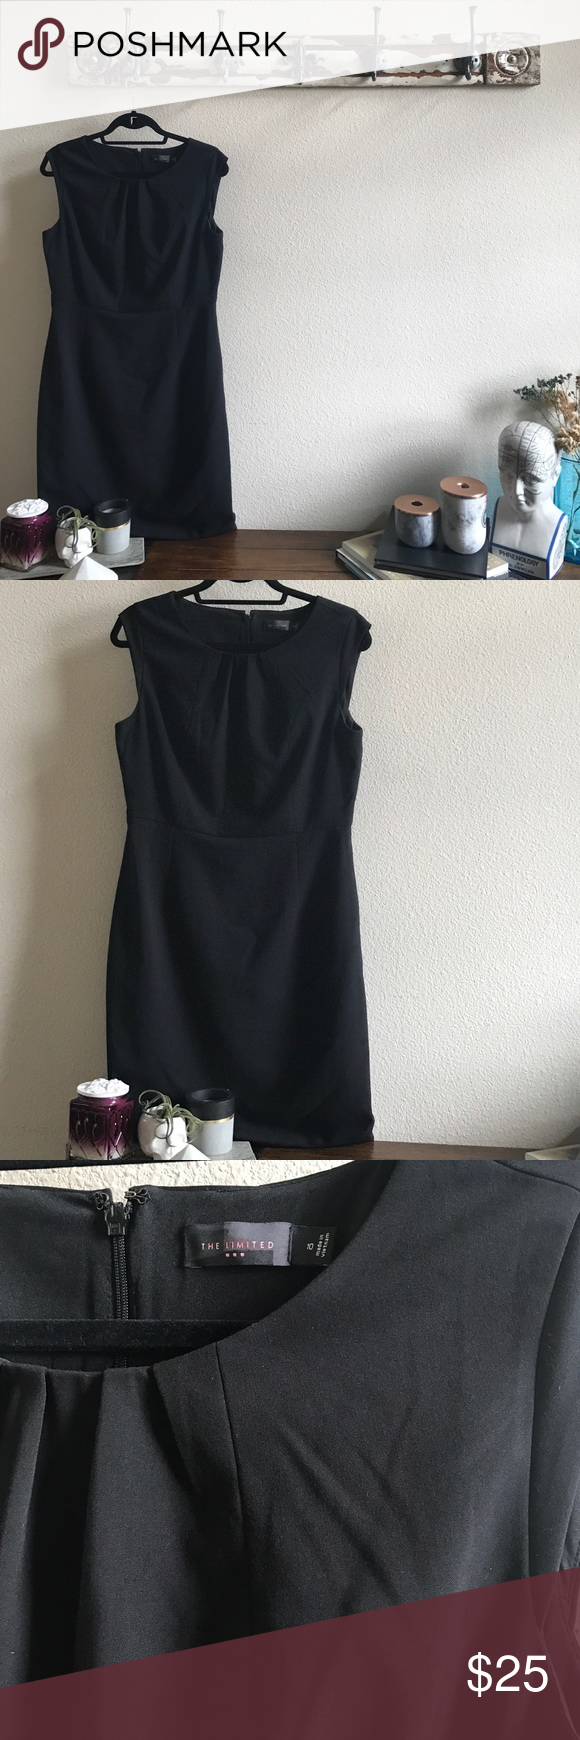 "Perfect LBD Sheath Dress This is so flattering! It's completely lined and from the suiting line at The Limited. It has stretch to it and is 35"" long, I'm 5'5 and it hits me at the knee. The Limited Dresses"